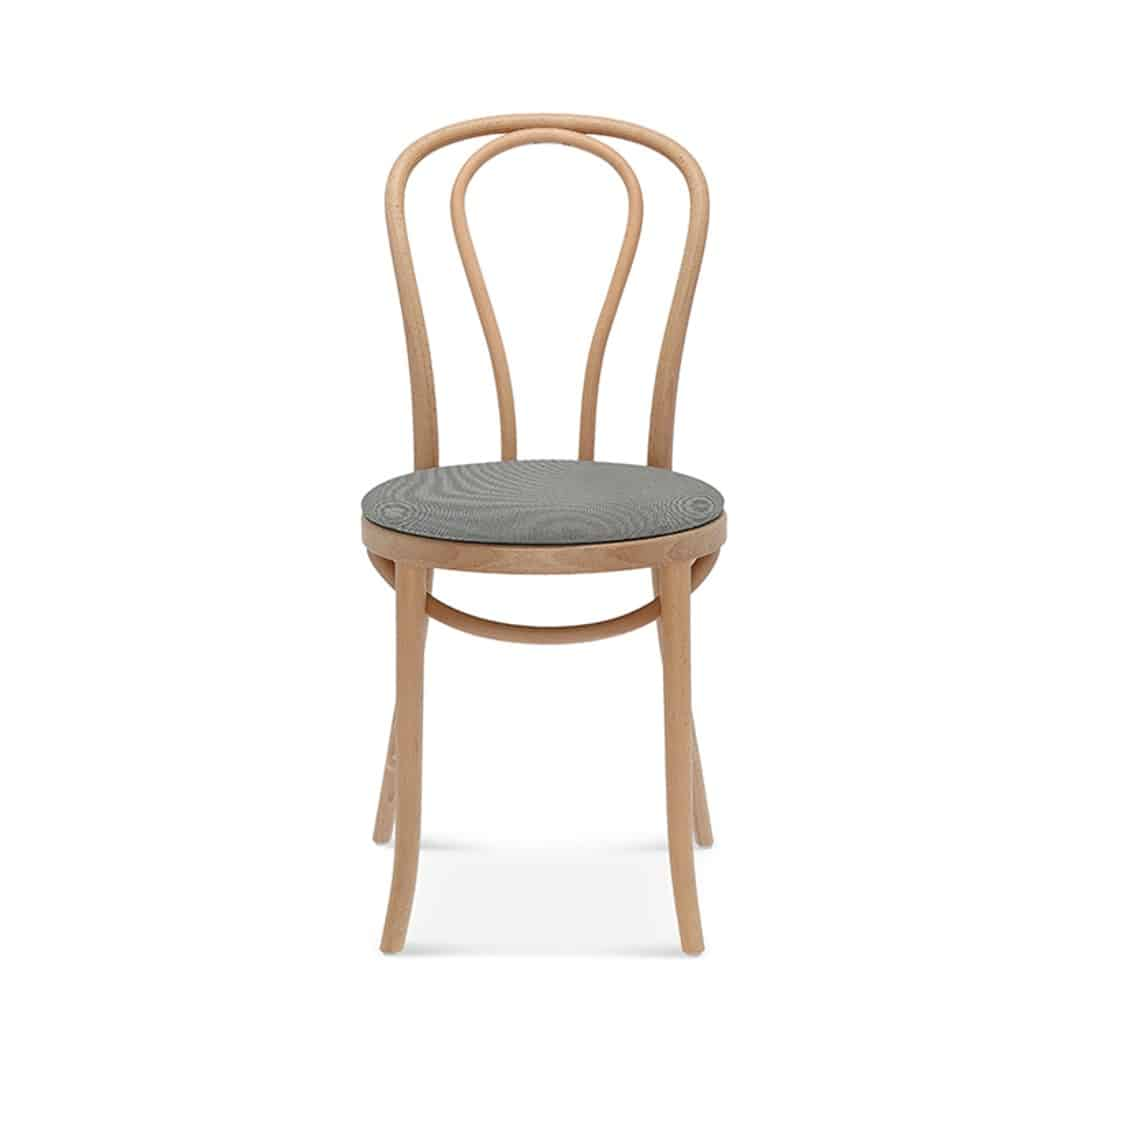 Soho side chair 10 classic bentwood chair DeFrae Contract Furniture upholstered seat front view